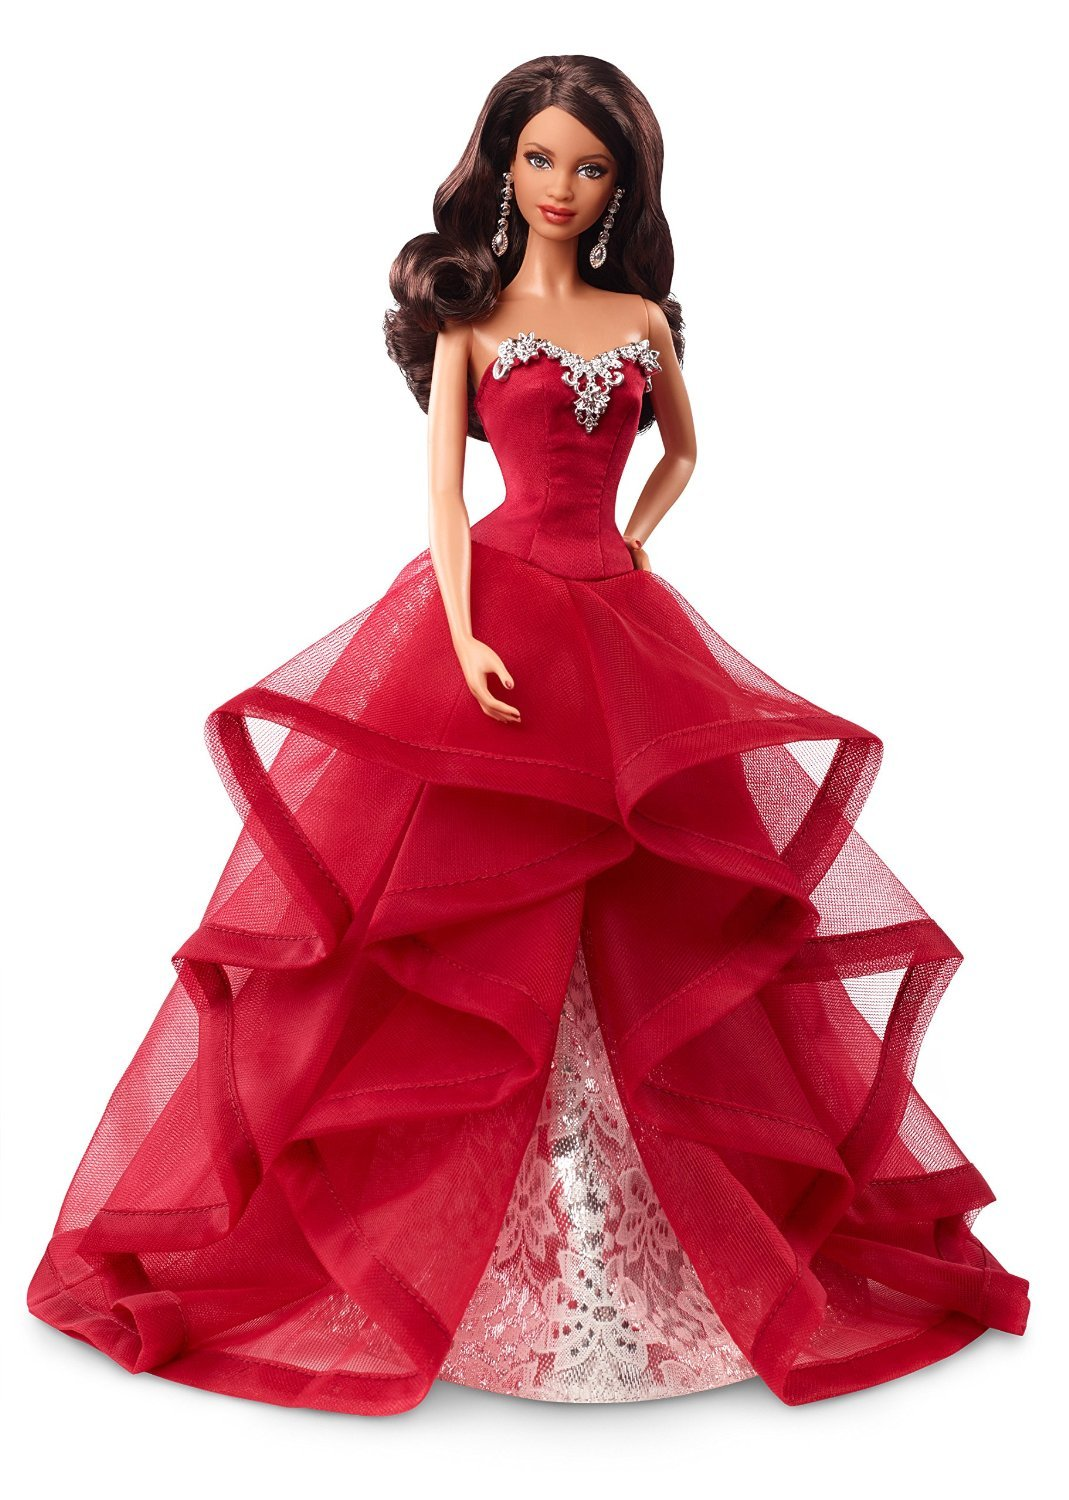 Barbie Collector 2015 Holiday African-American Doll ...